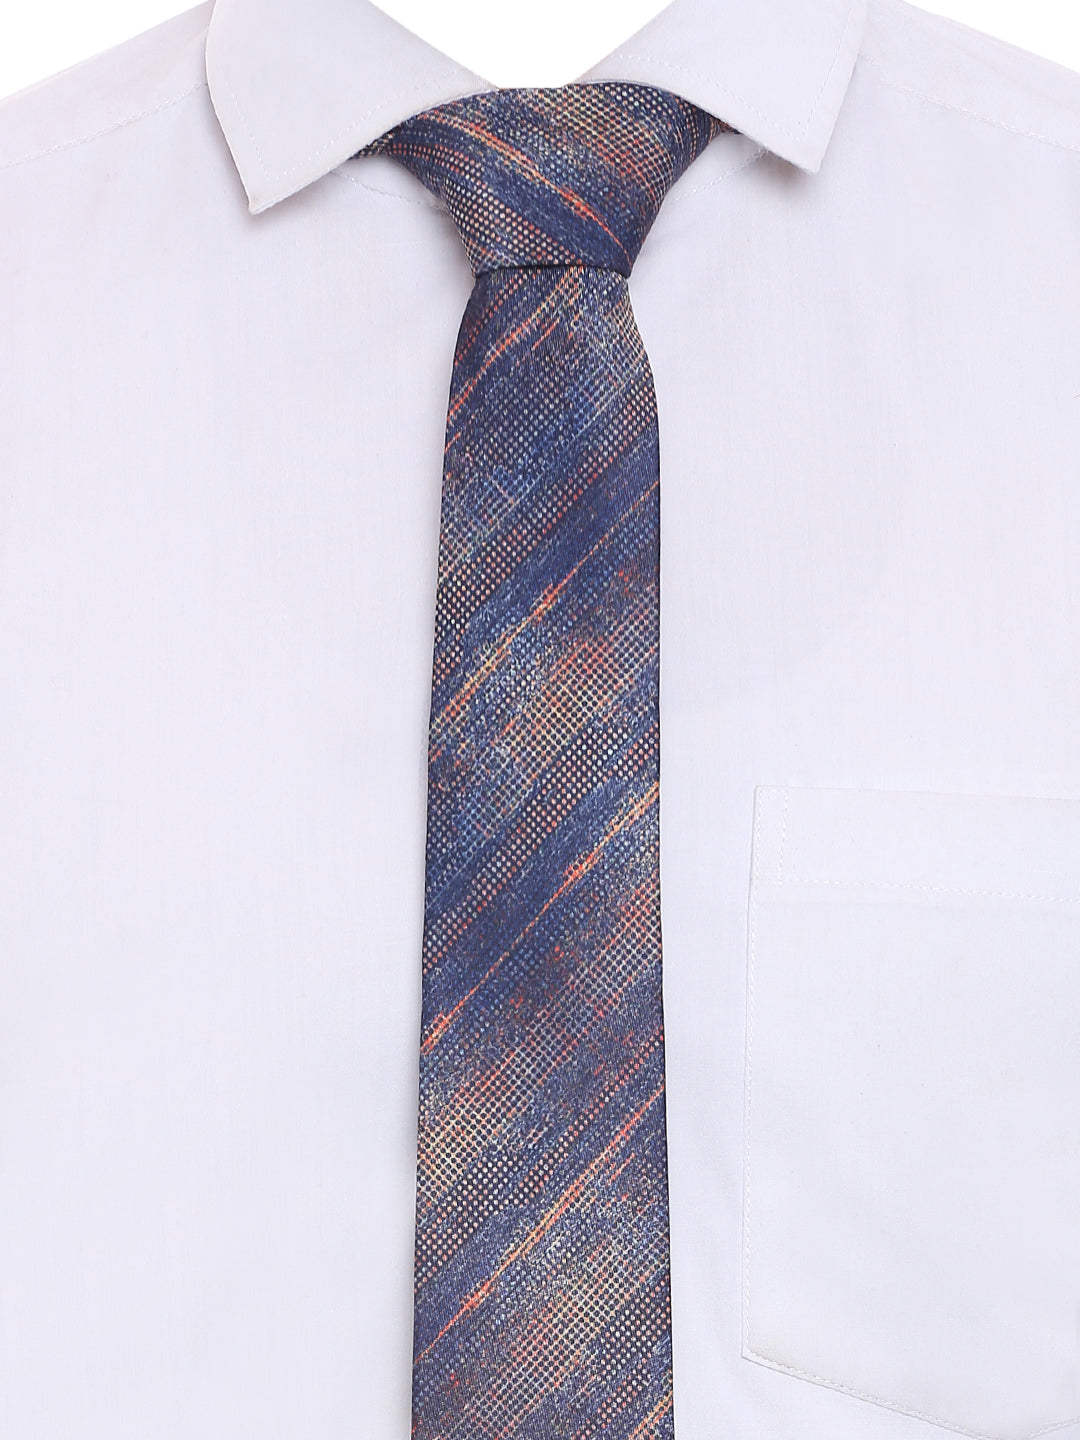 Zido Tie for Men PRT185